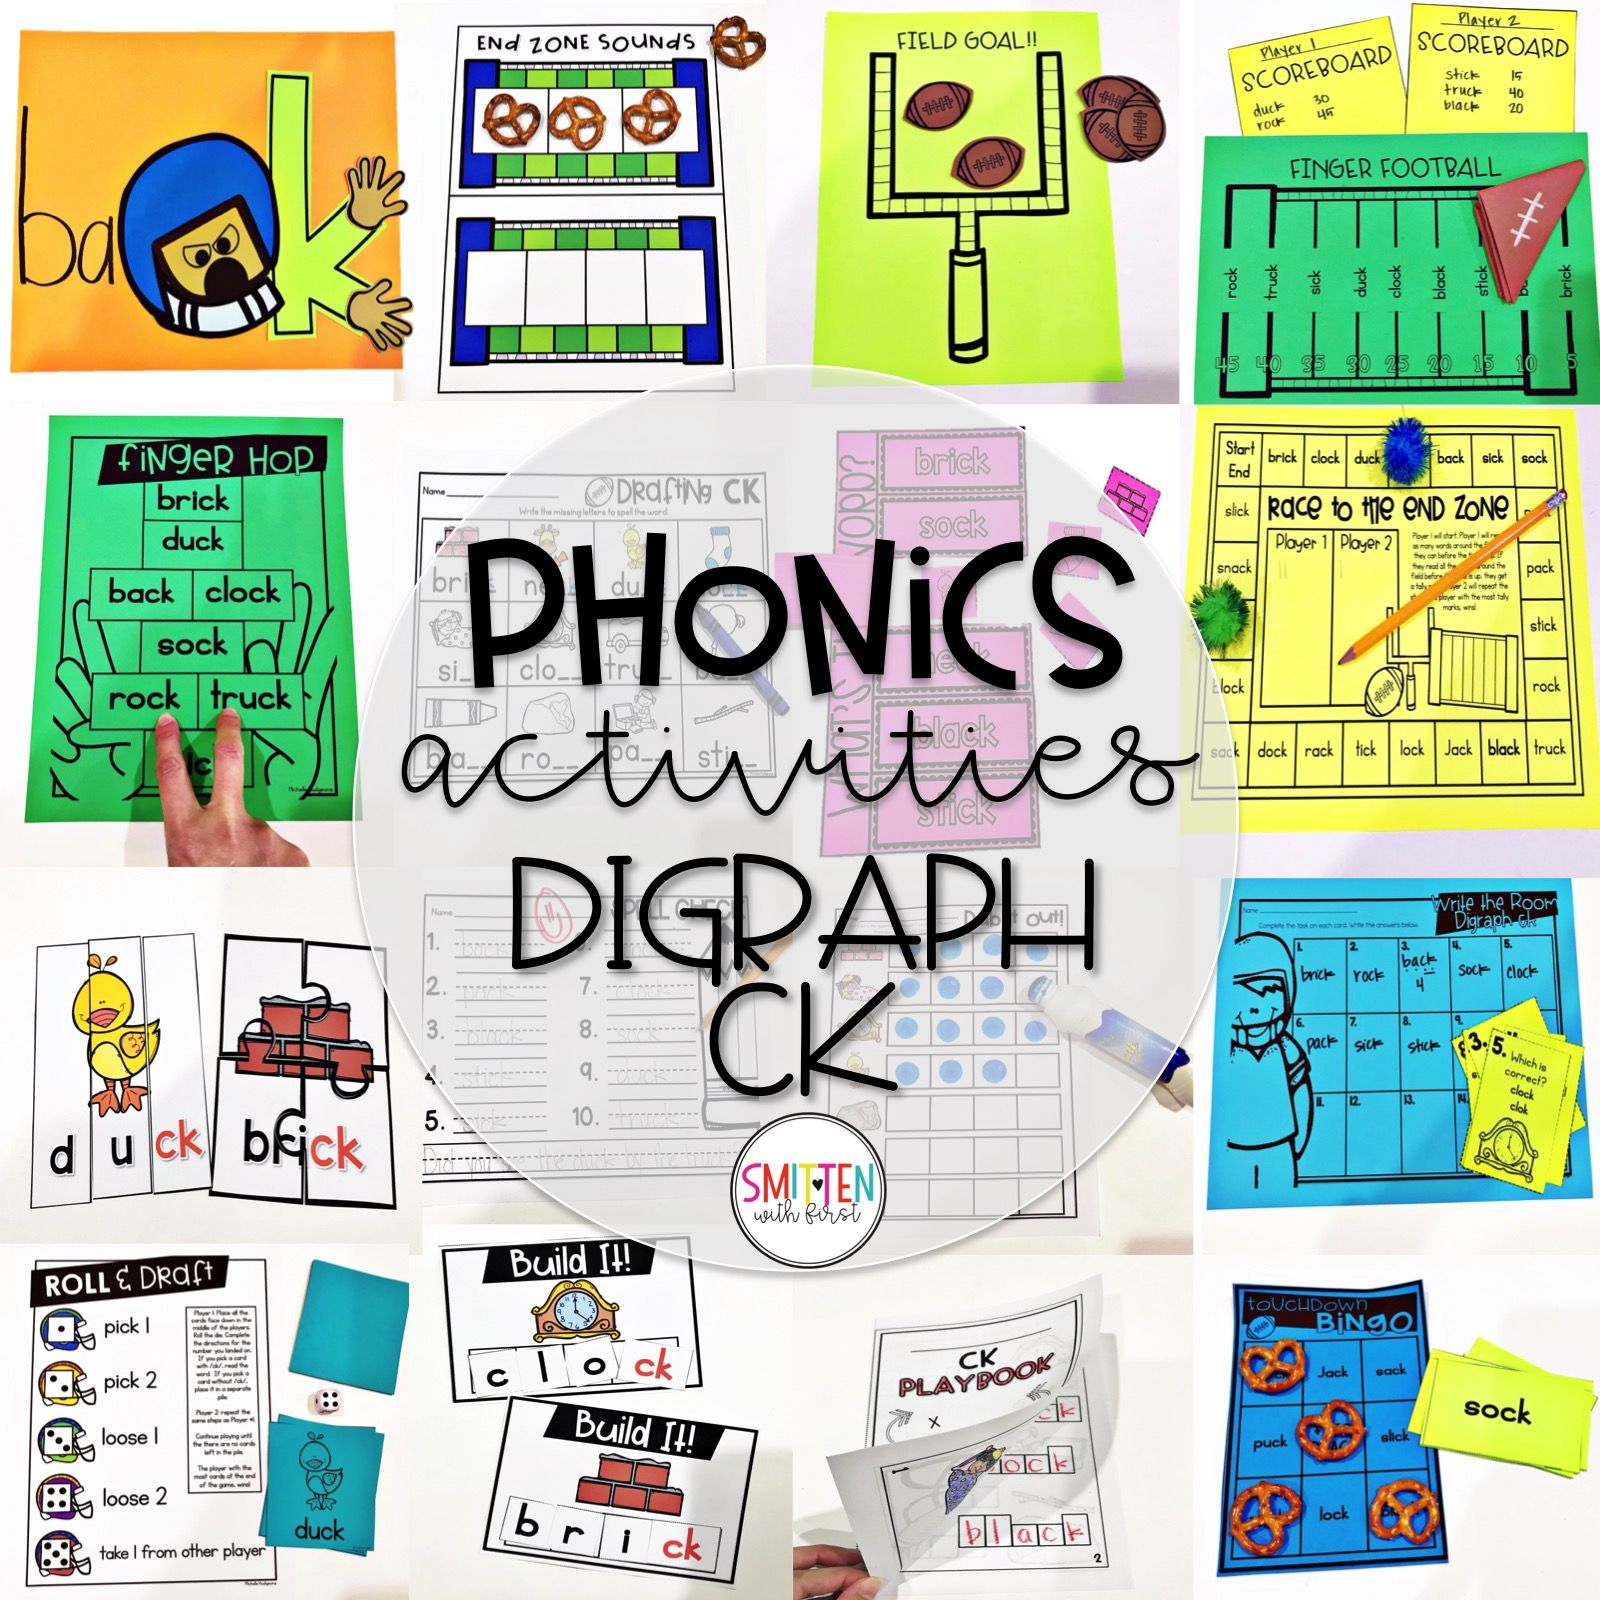 Digraph Ck Phonics Activities And Games With Images